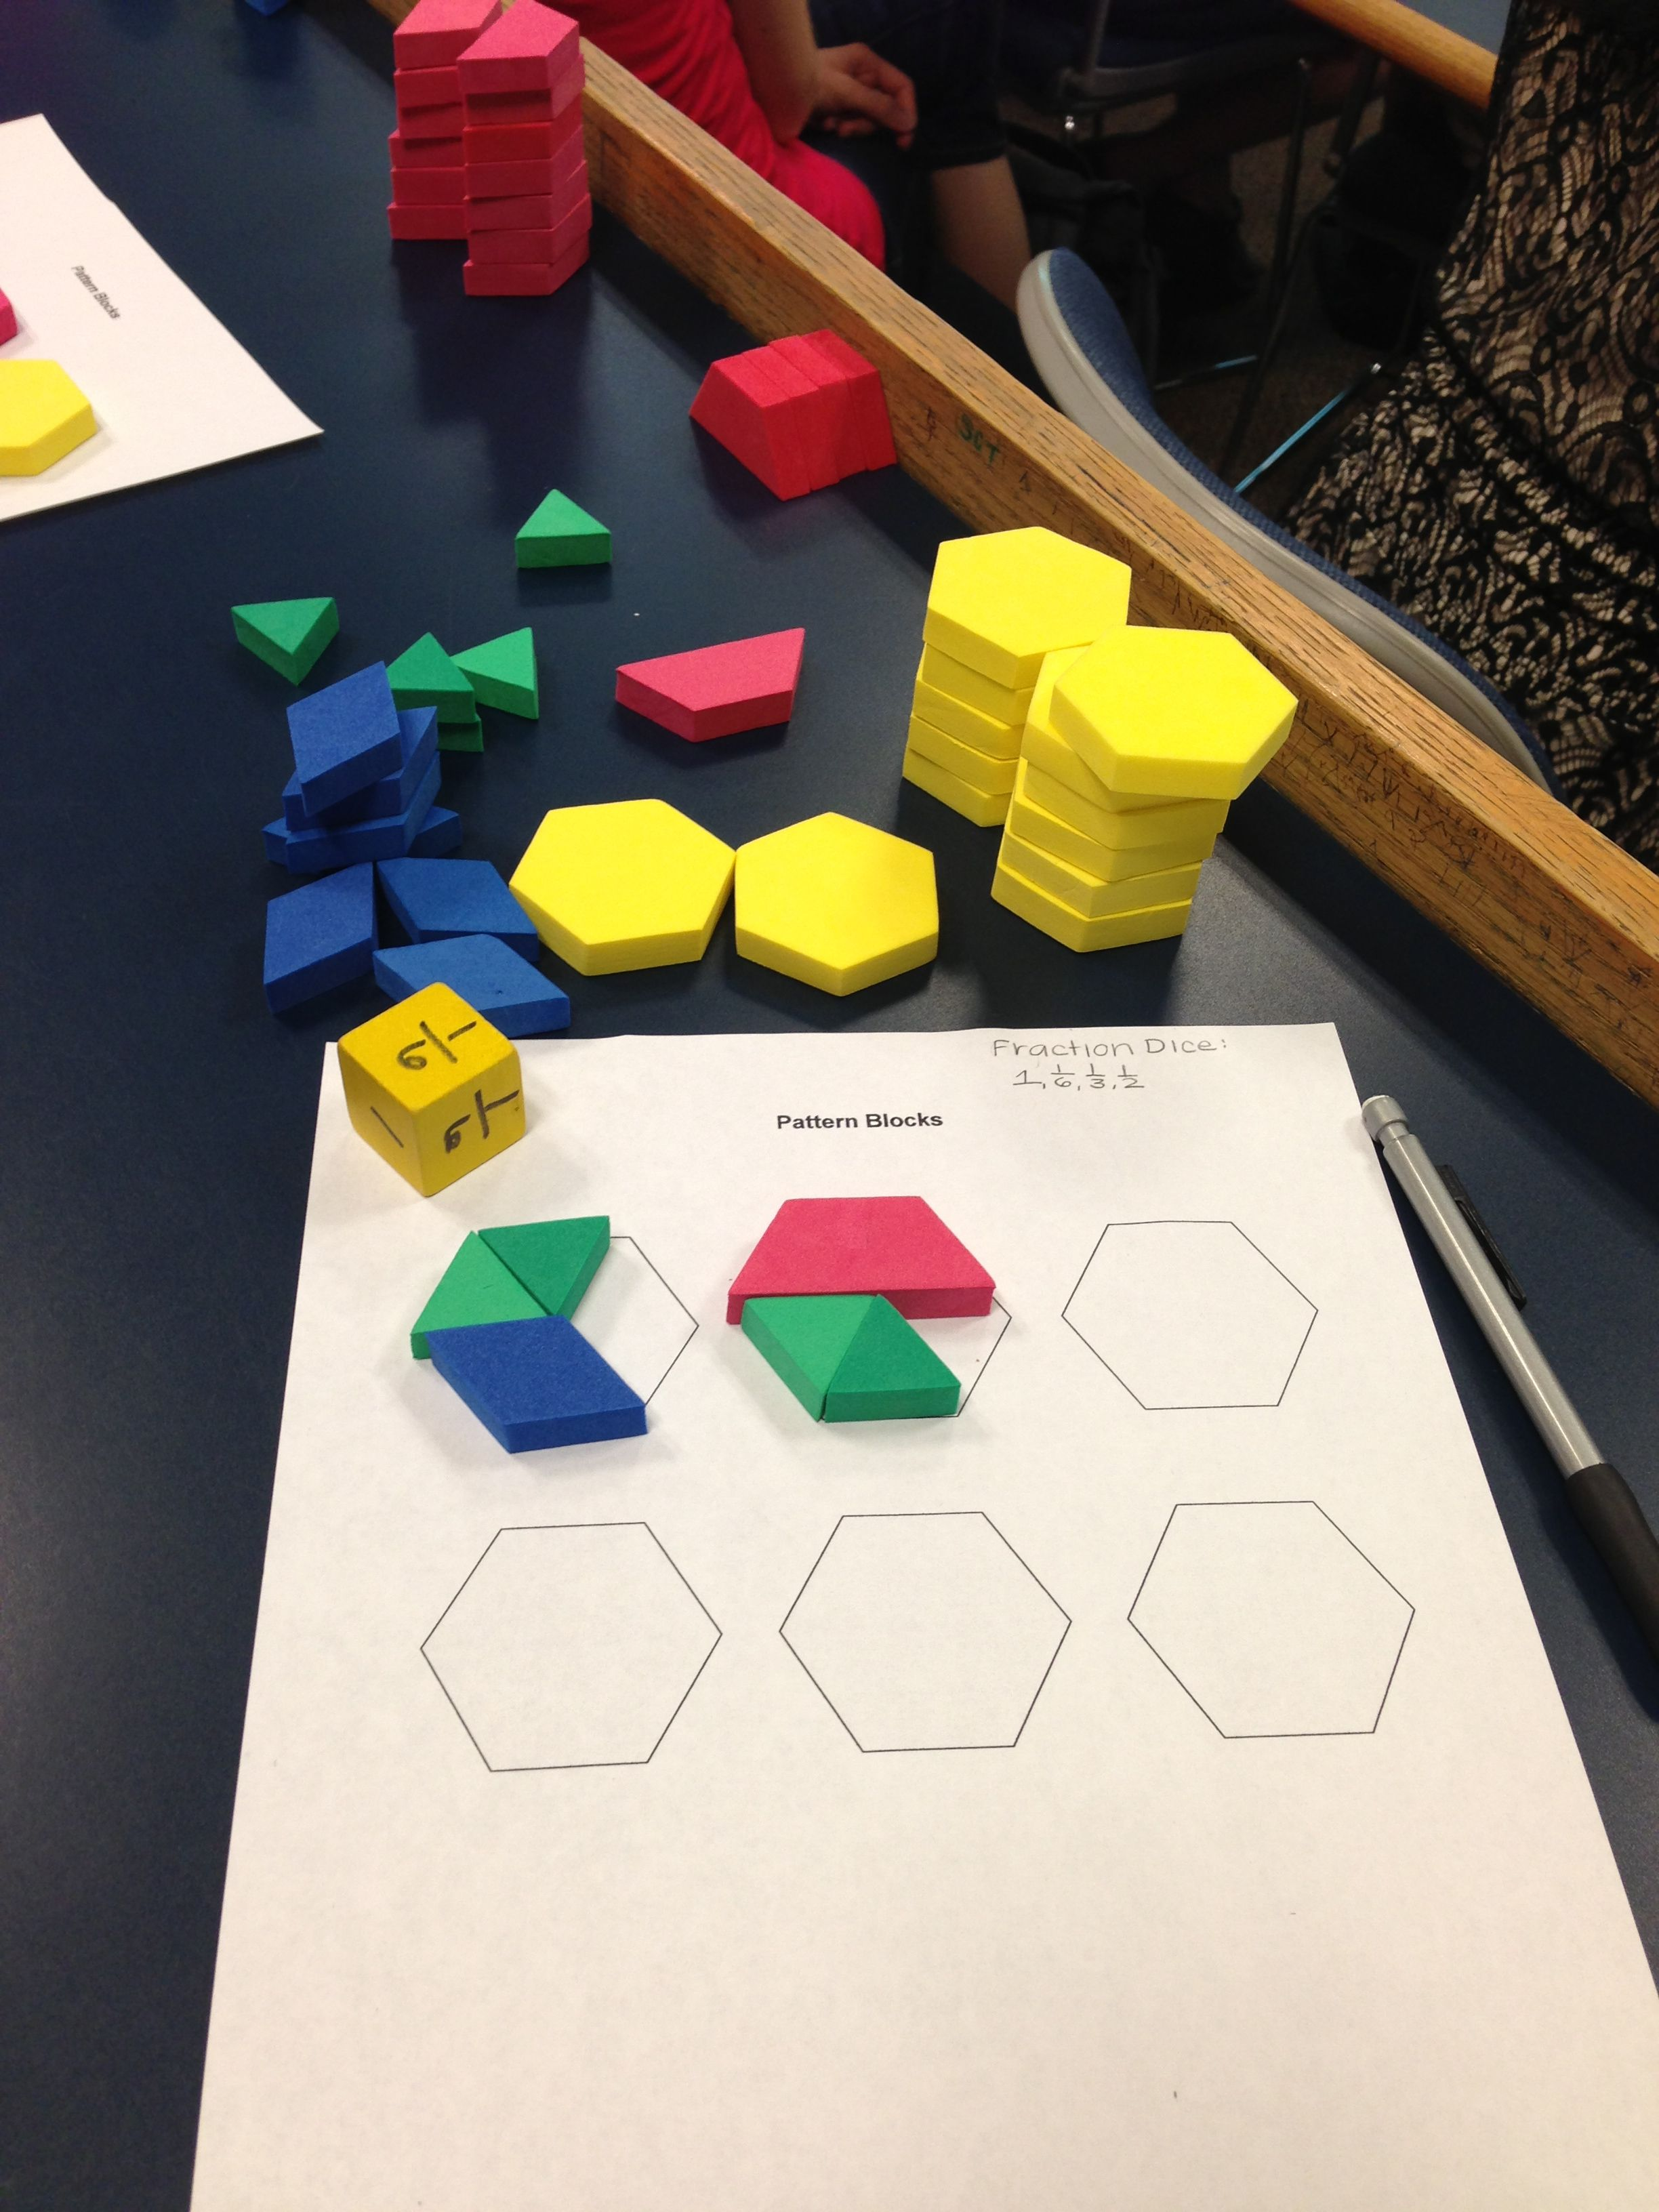 Fraction Game Student Roll Dice With Fractions Of 1 6 1